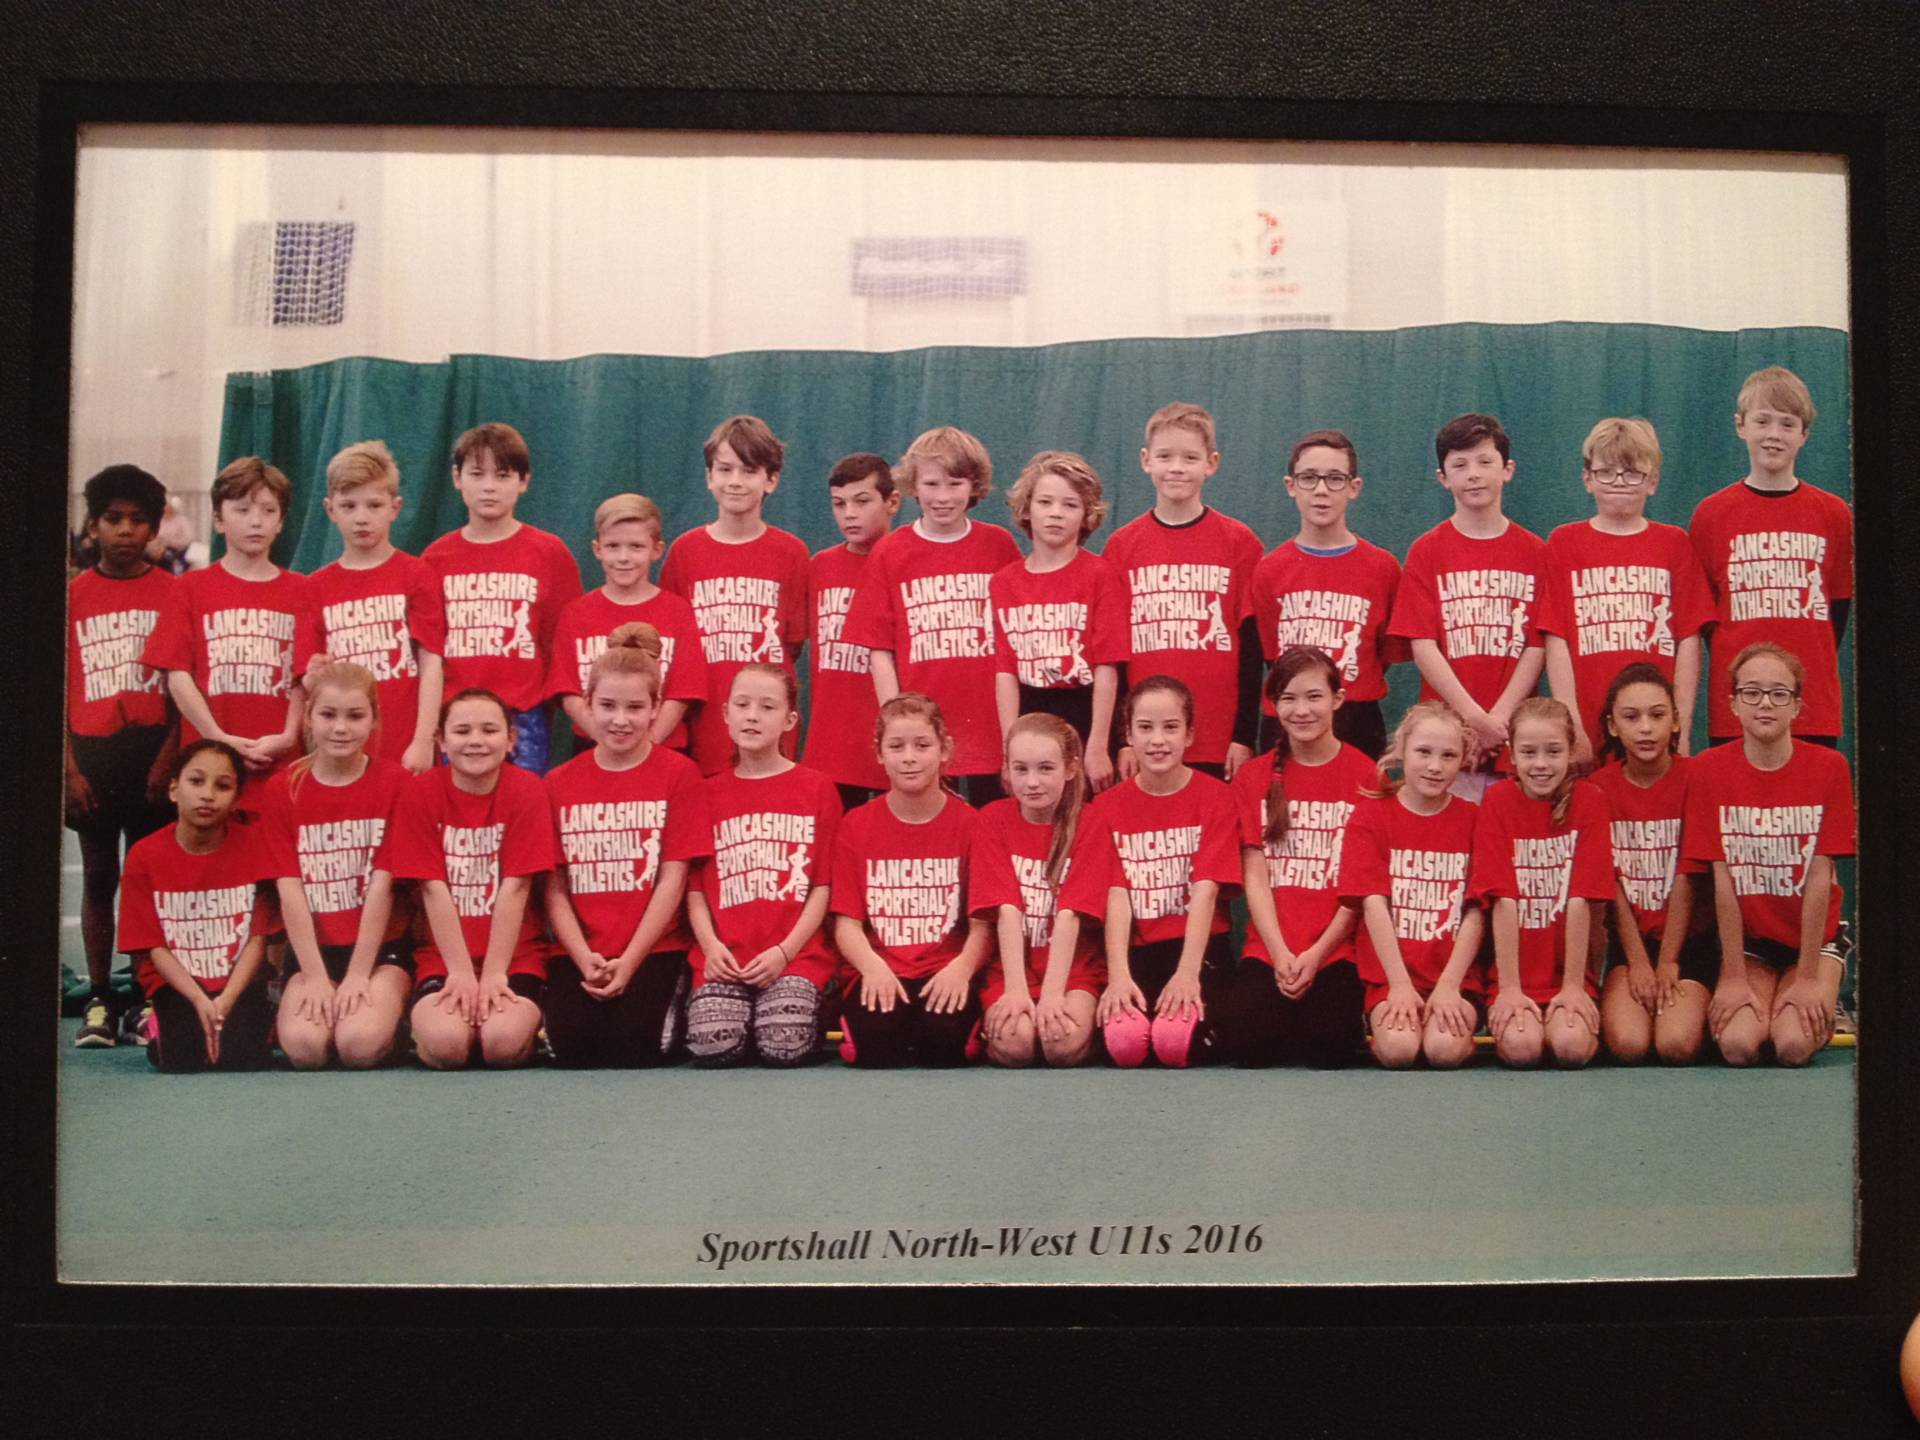 PB's and SB's for Cameron and Josh at Sportscity – Harriers youngsters represent Lancashire in Sportshall